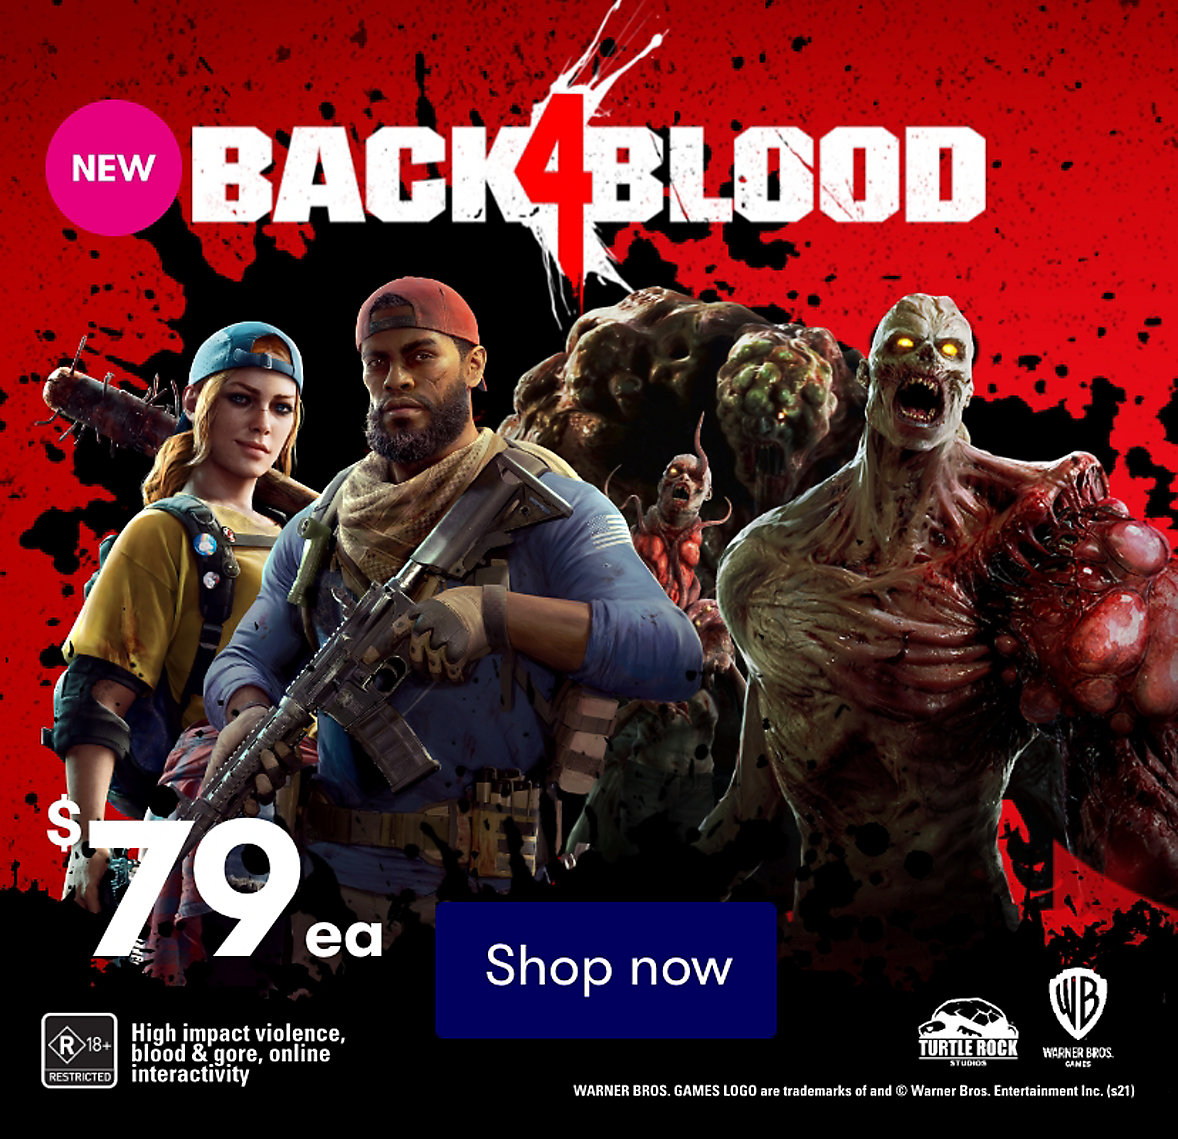 Buy Back 4 Blood now at BIG W